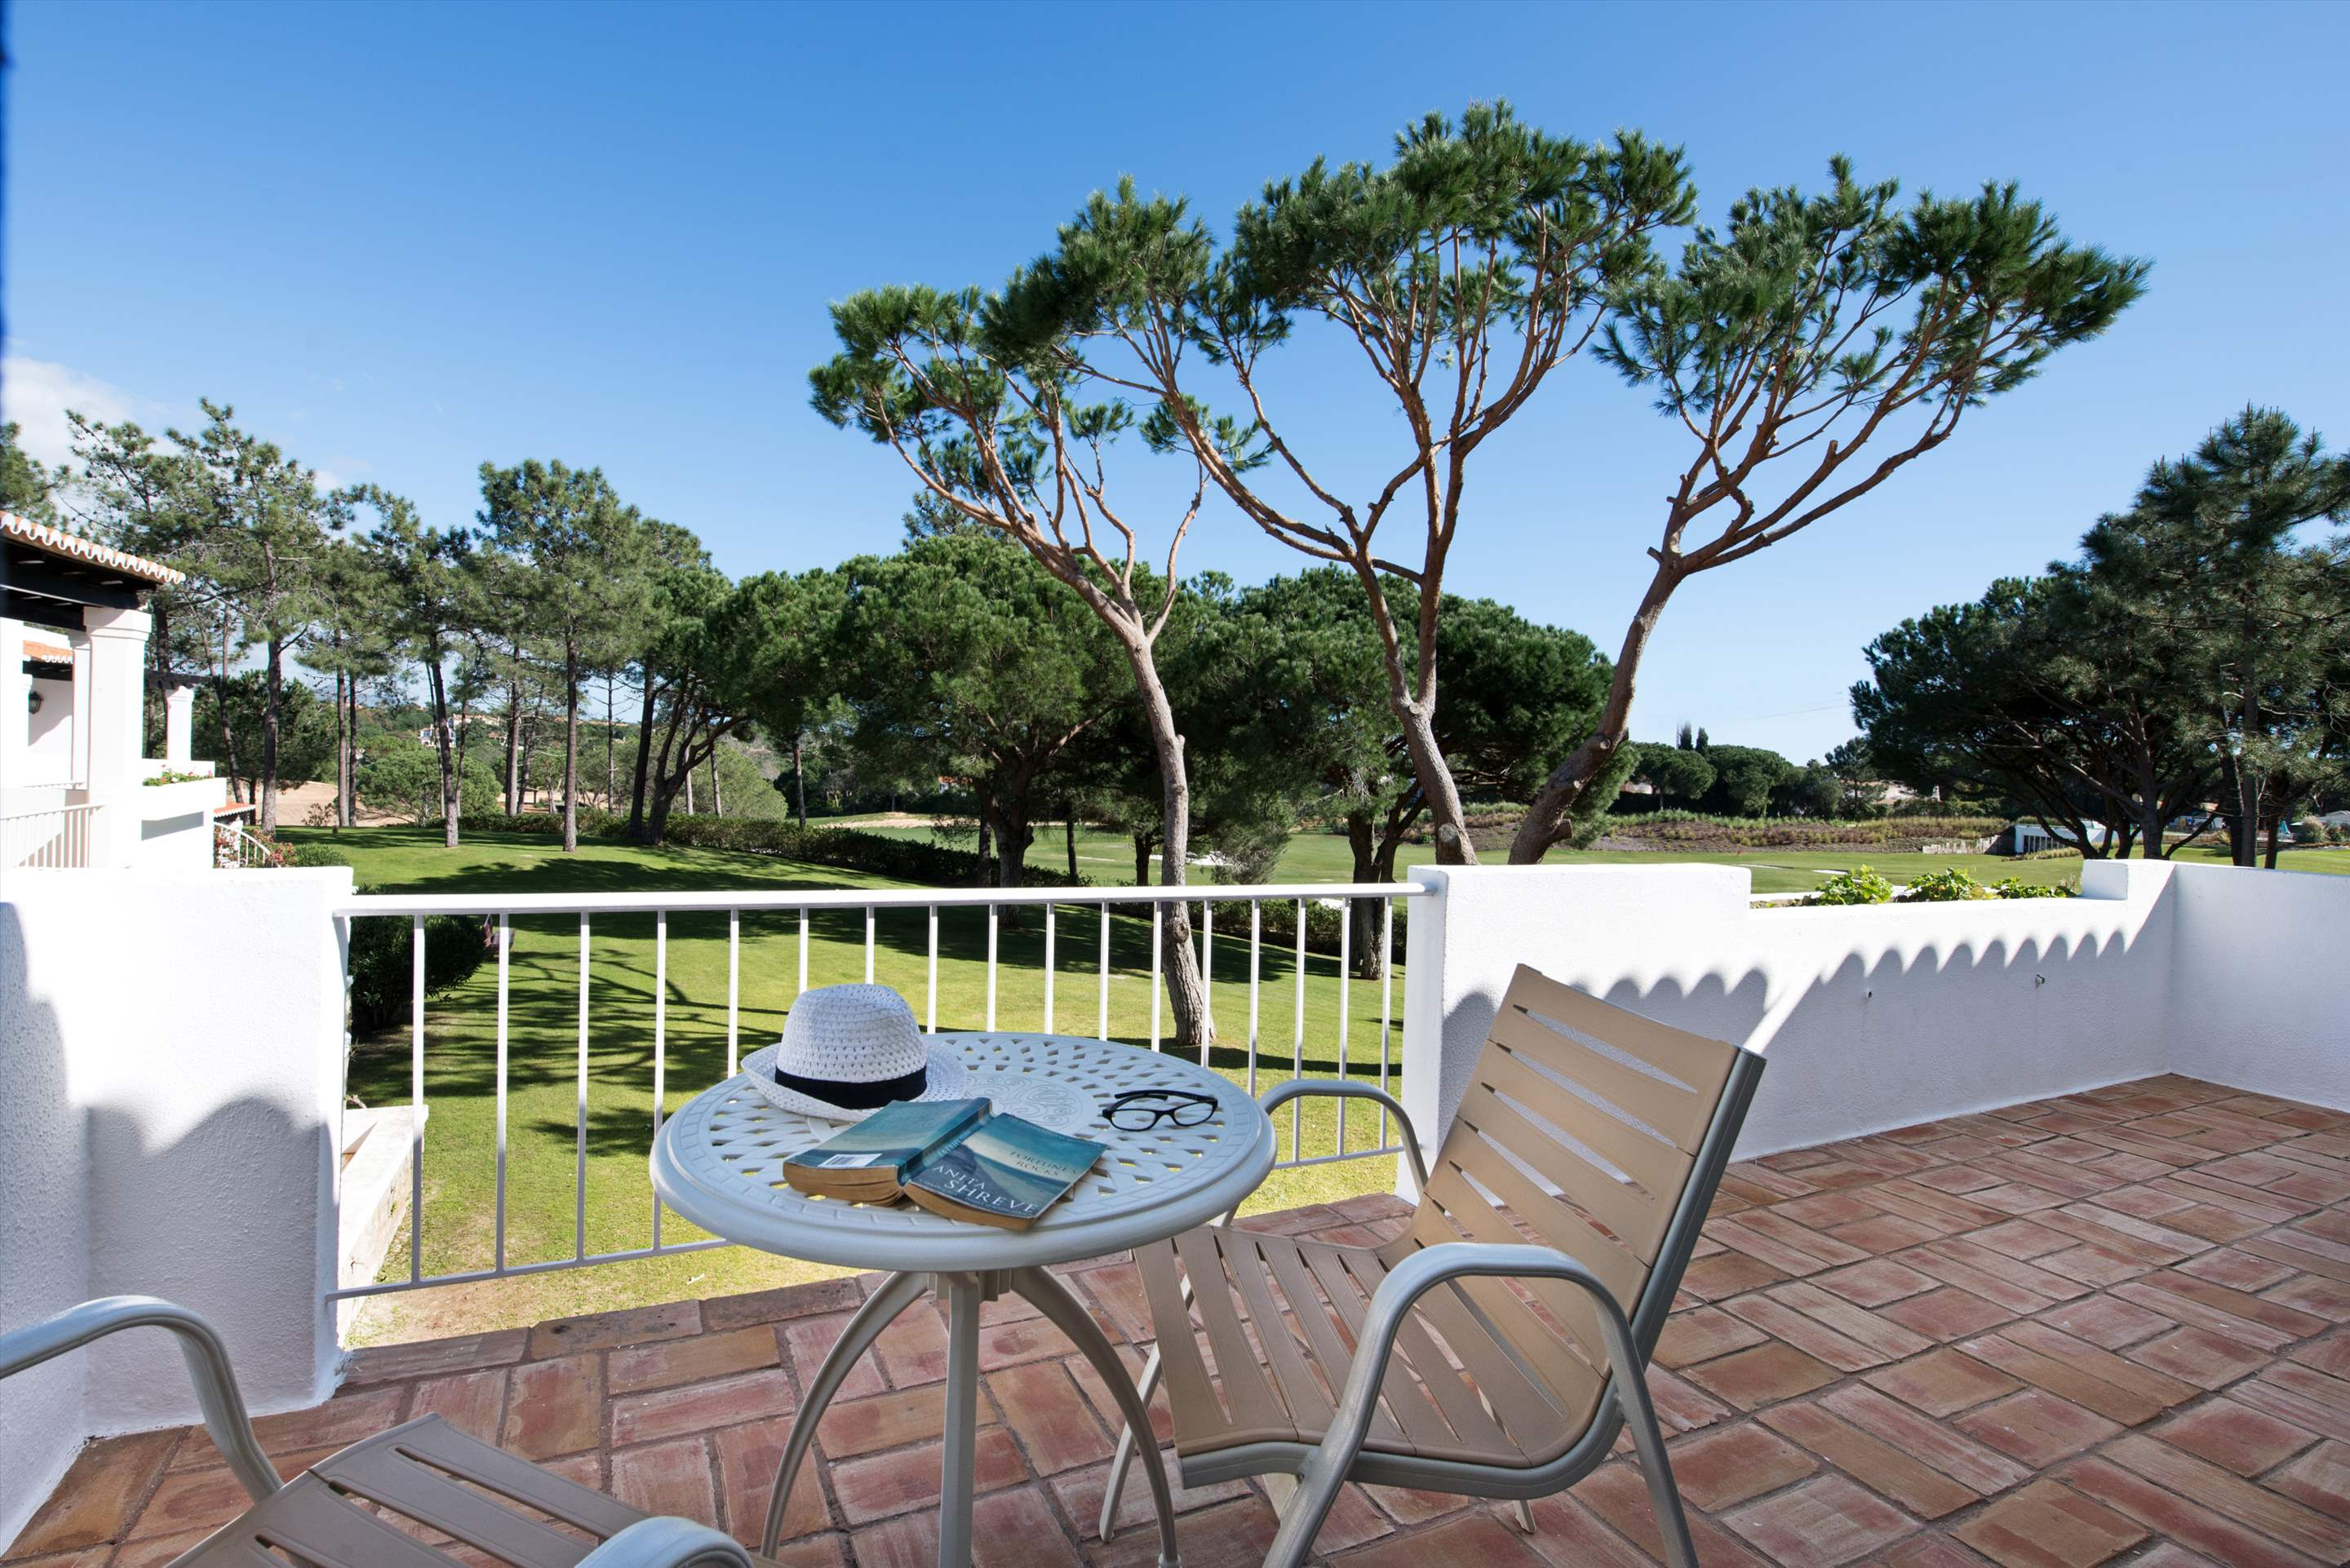 Four Seasons Country Club 1 bed, Superior - Thursday Arrival, 1 bedroom apartment in Four Seasons Country Club, Algarve Photo #8